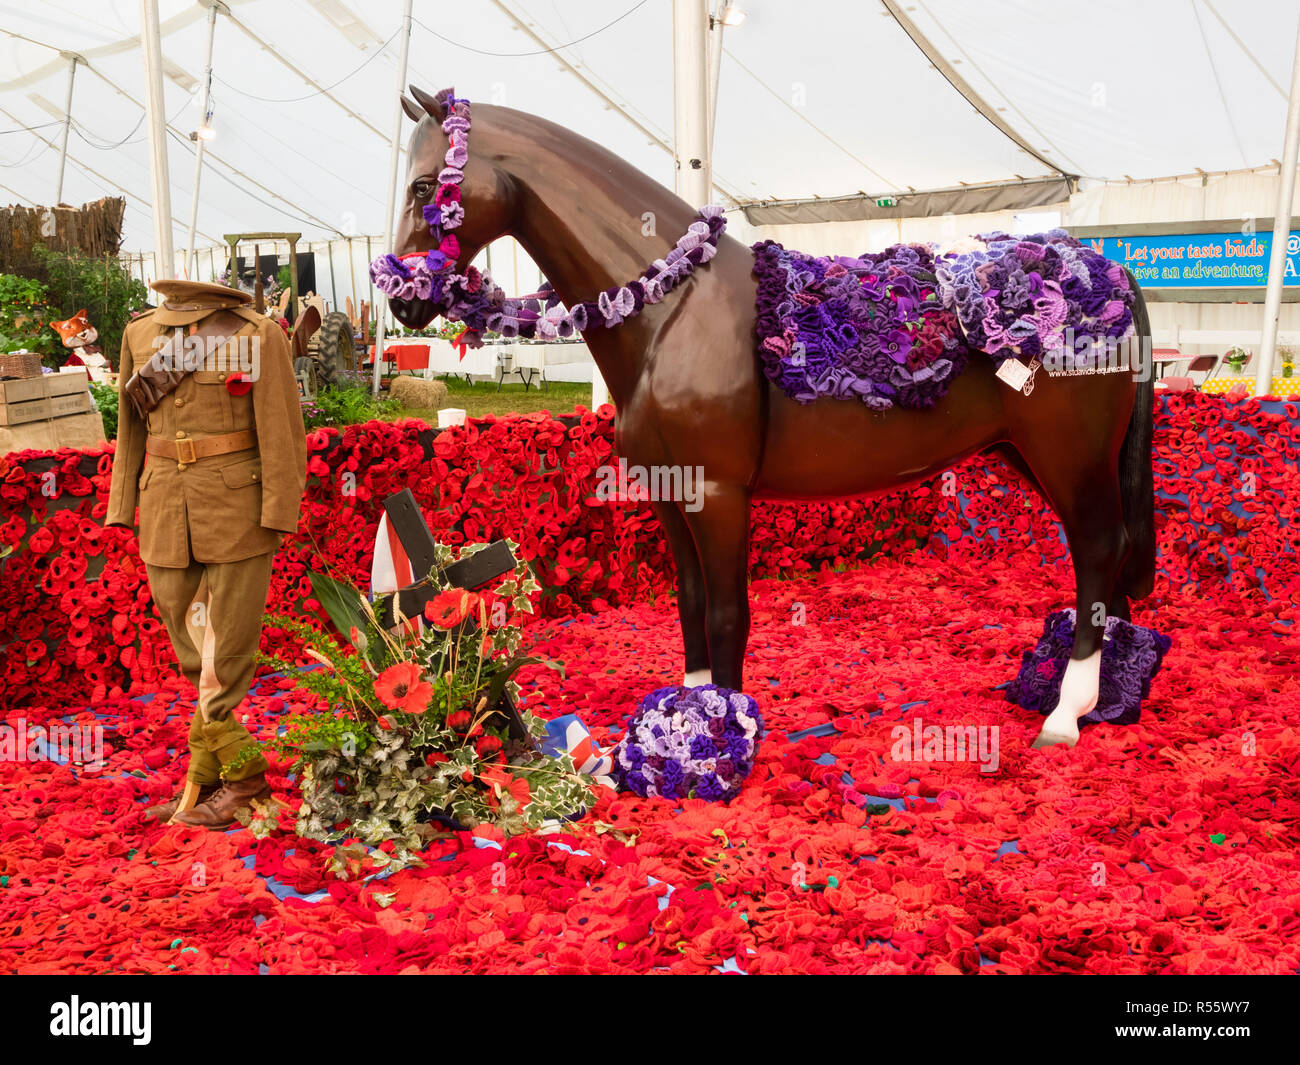 World War 1 remembrance memorial with horse and private models among knitted poppies at Devon County Show, 2018 - Stock Image